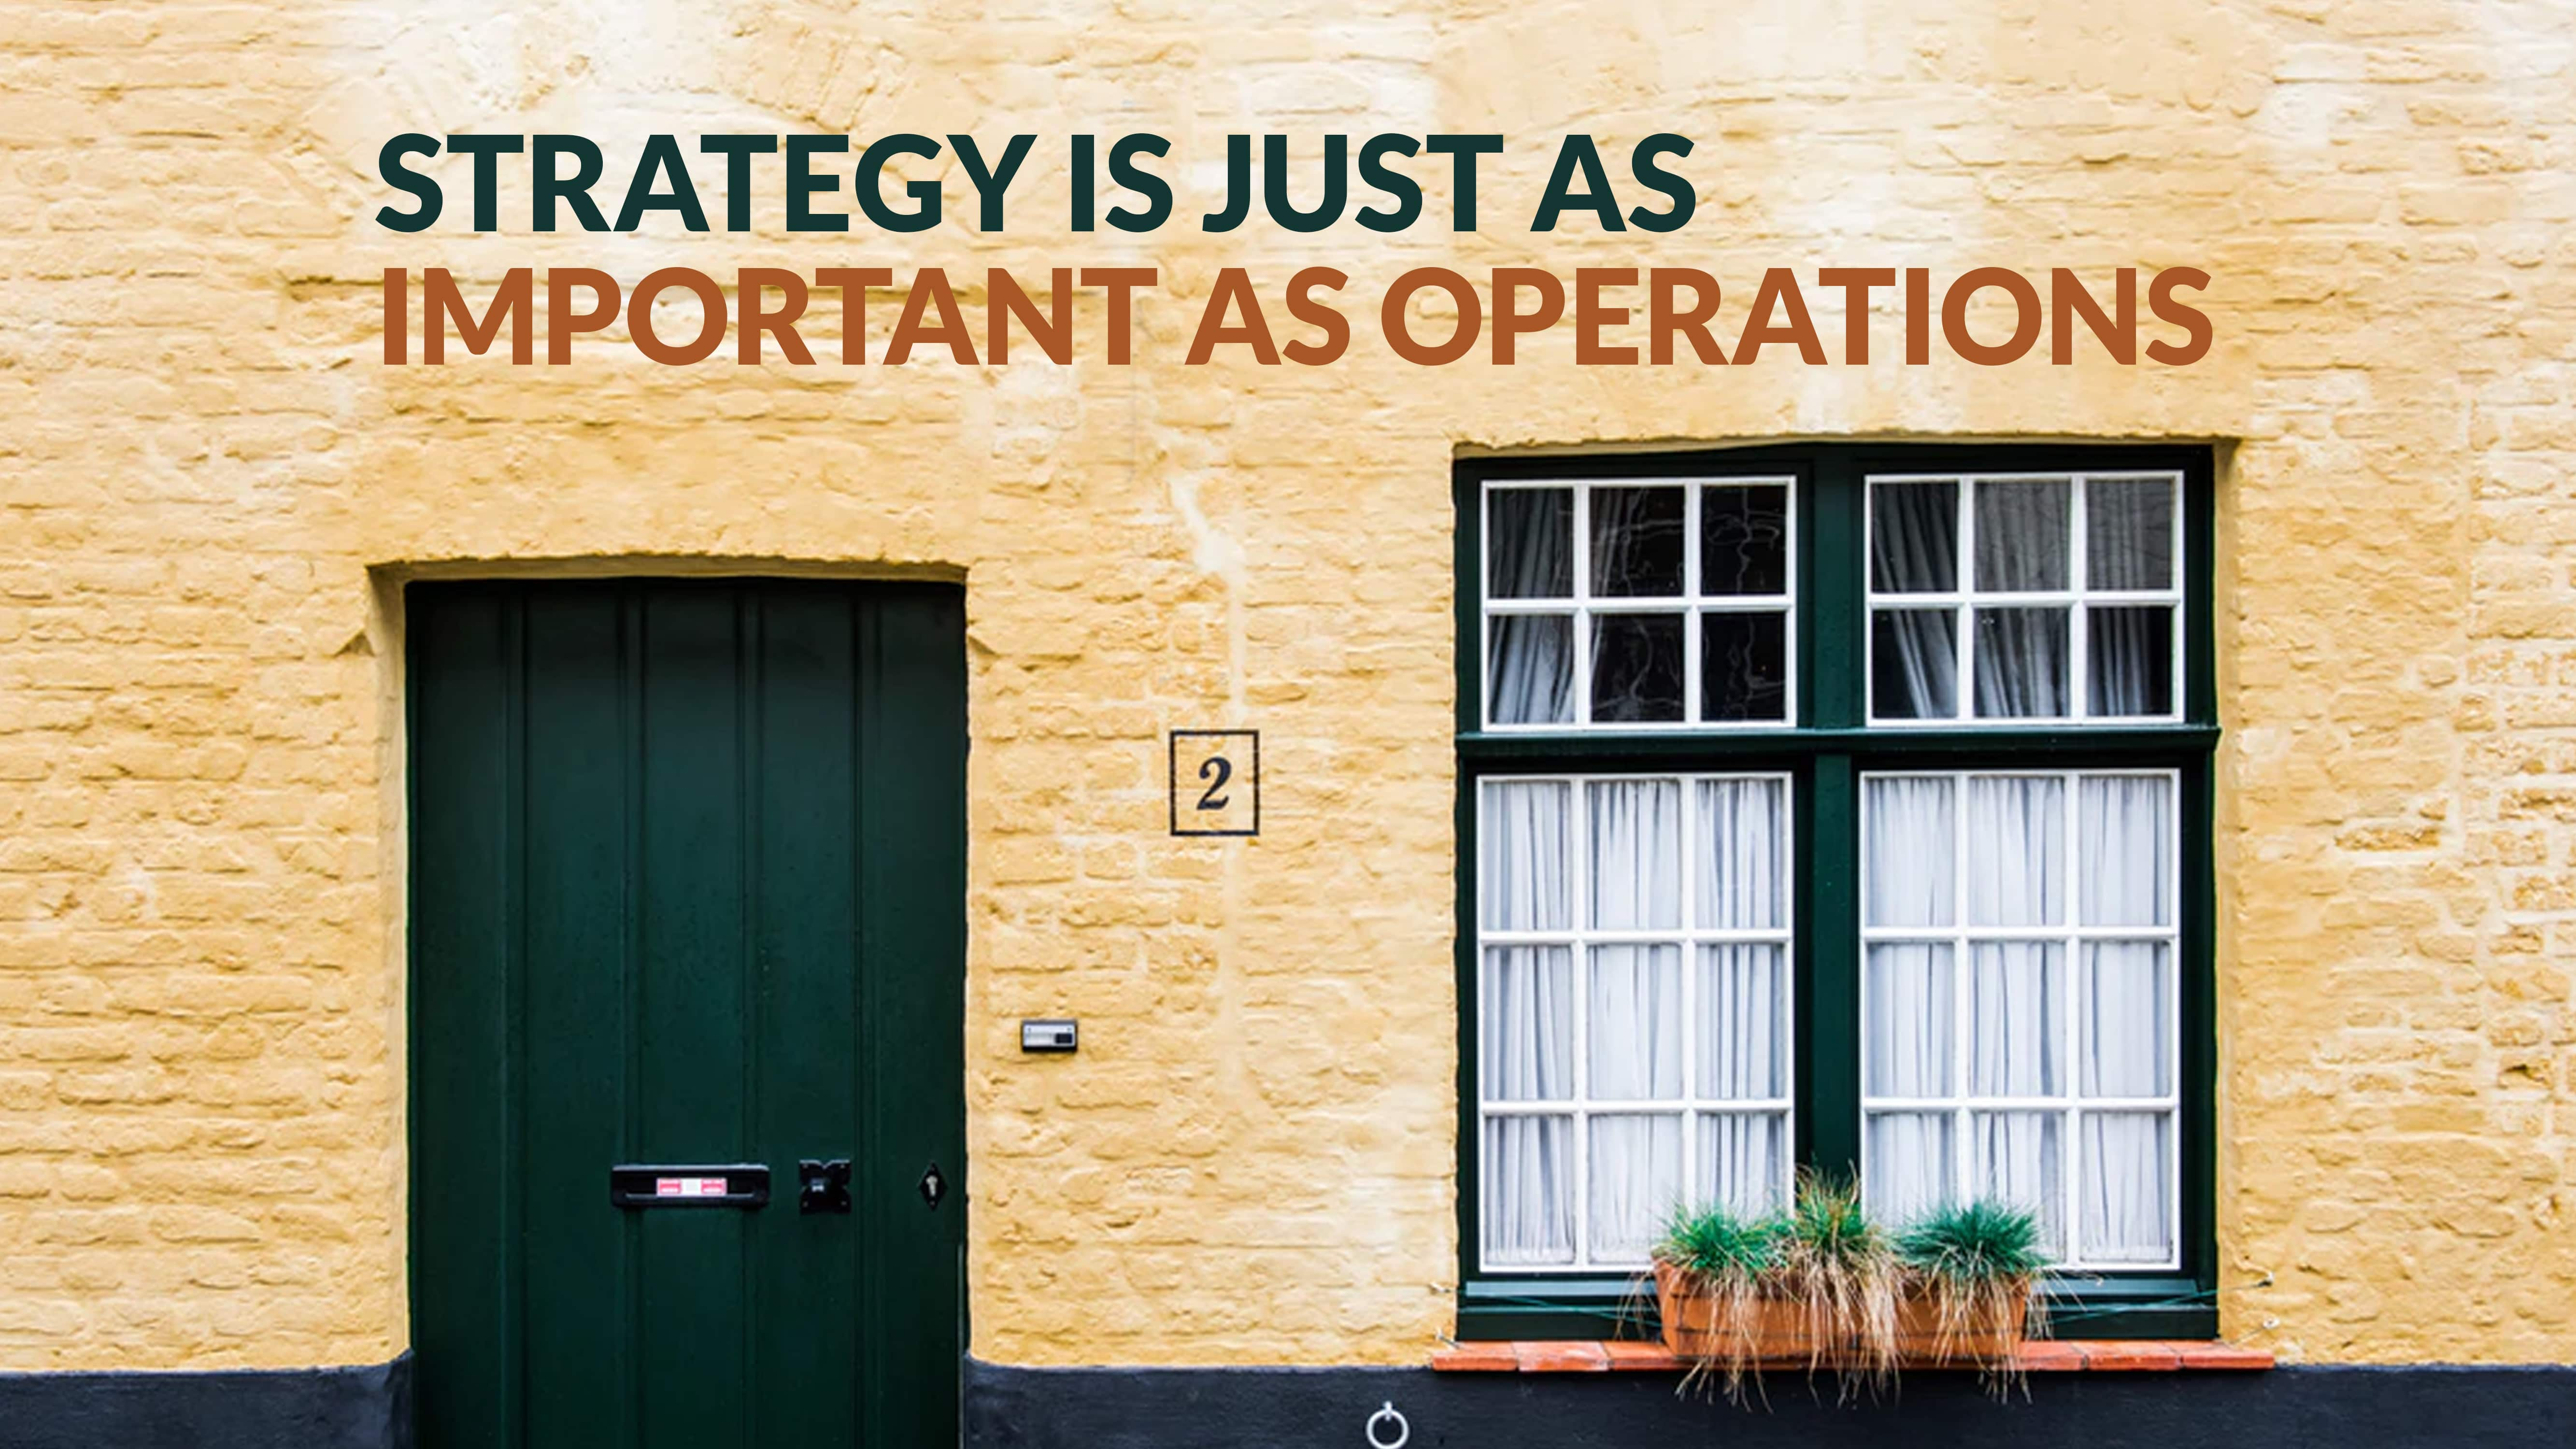 Strategy is just as important as operations